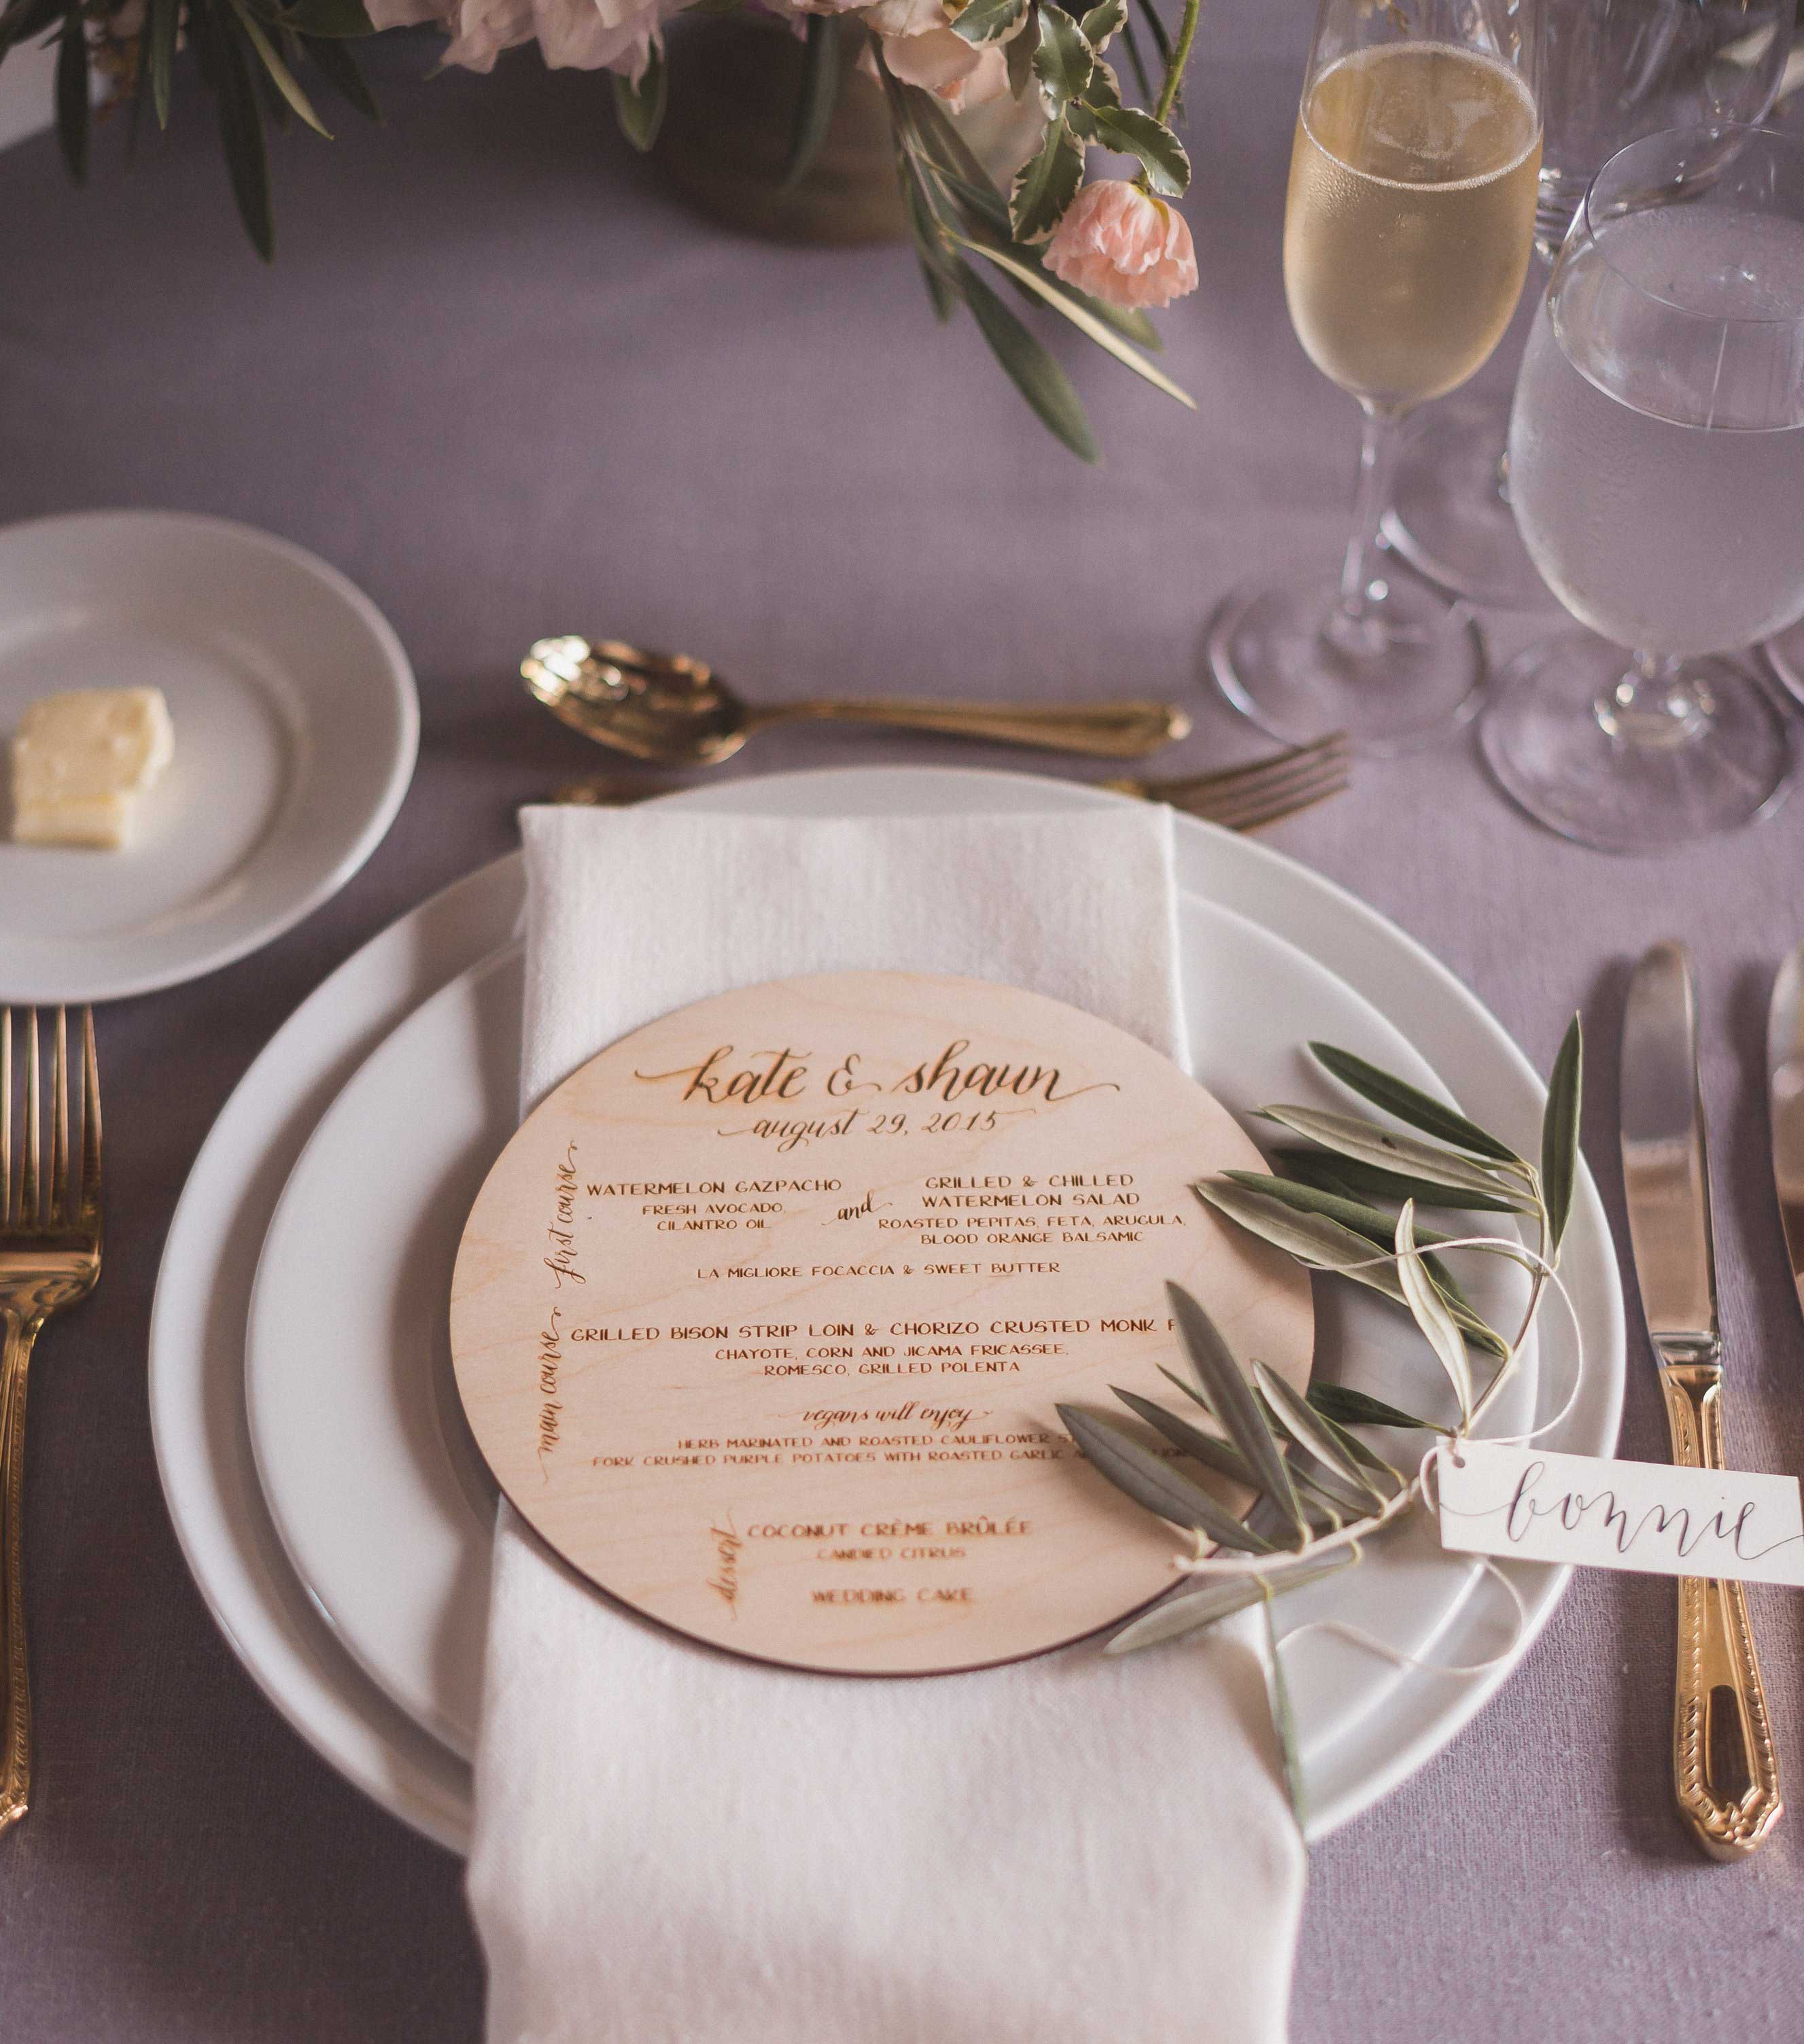 Rustic wedding menu on circle of wood slab